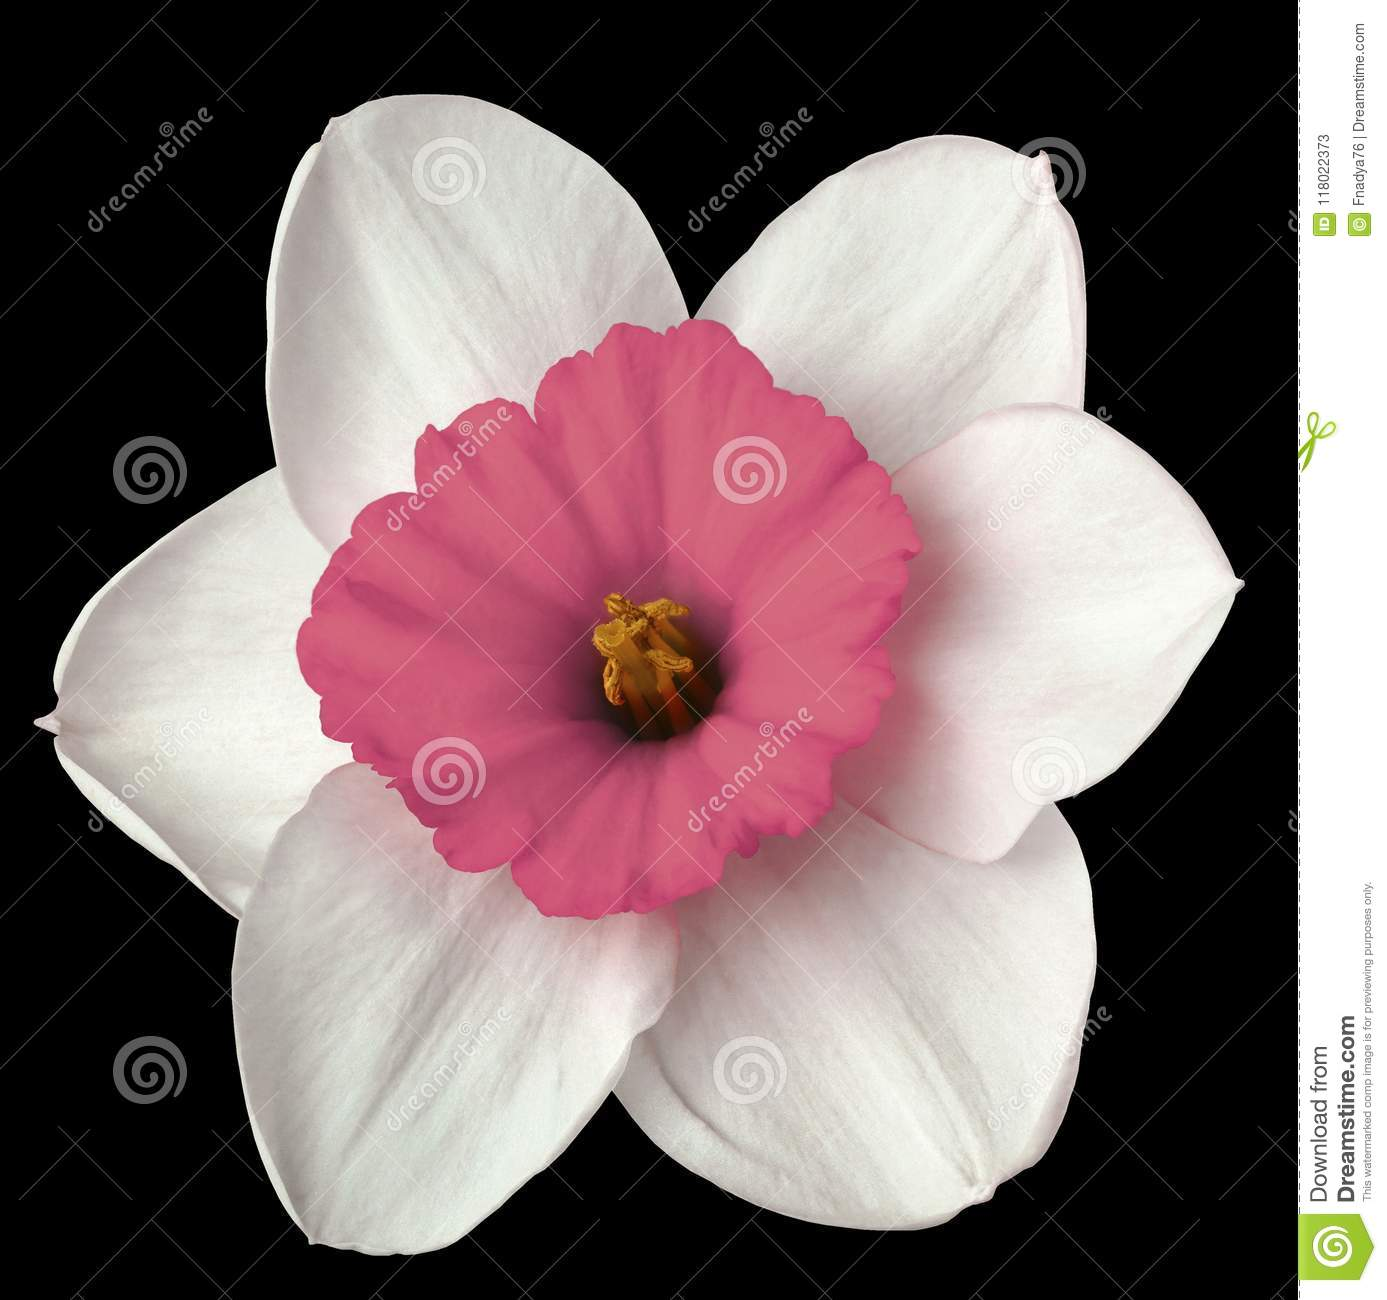 Flower White Pink Narcissus On The Black Isolated Background With